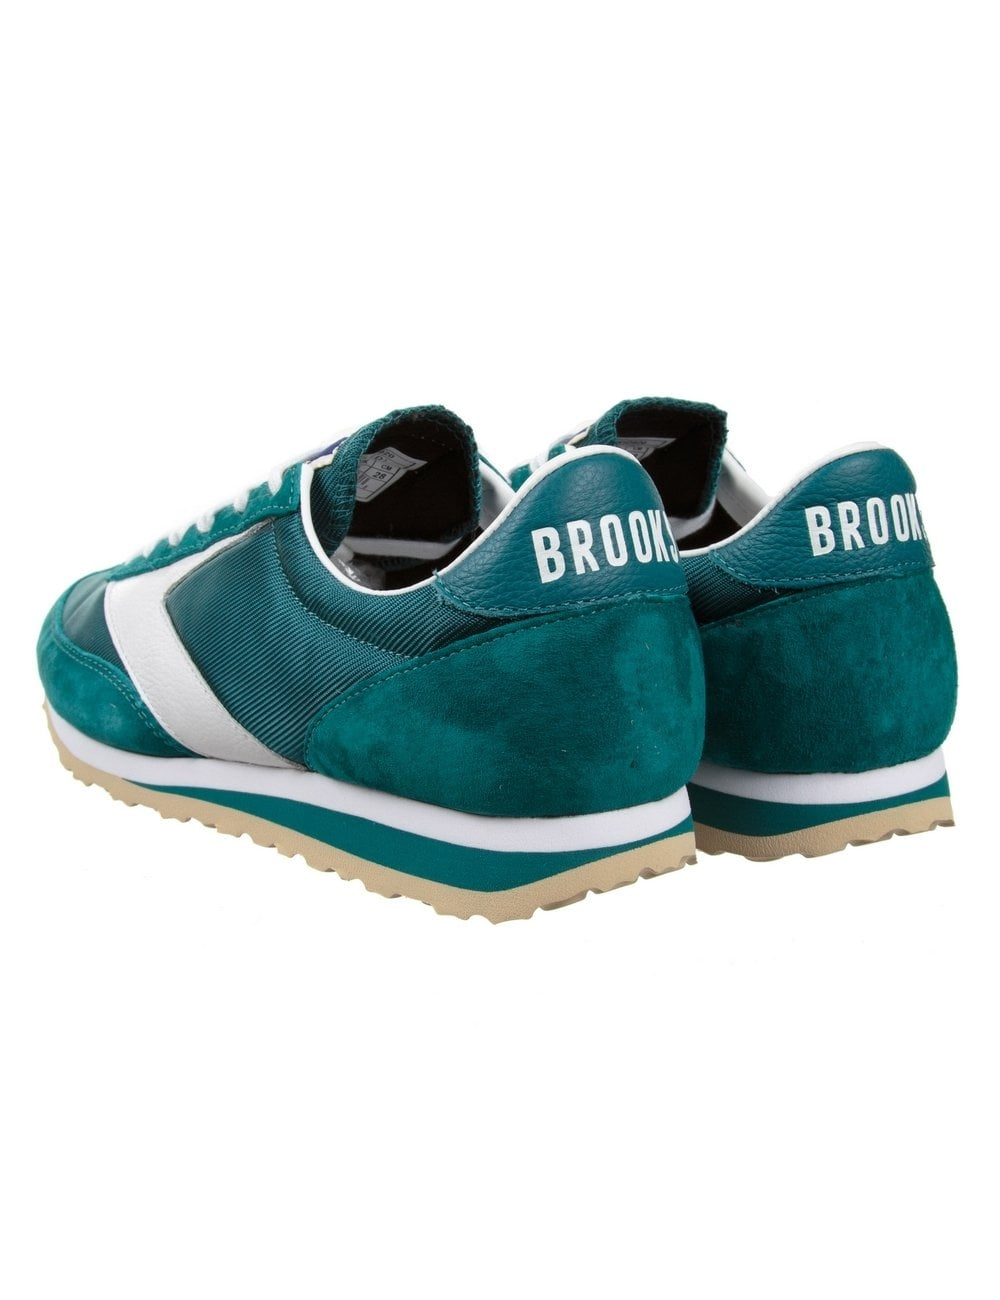 5d65983d22203 Brooks Heritage Vanguard Shoes - Dragonfly - Trainers from Fat ...